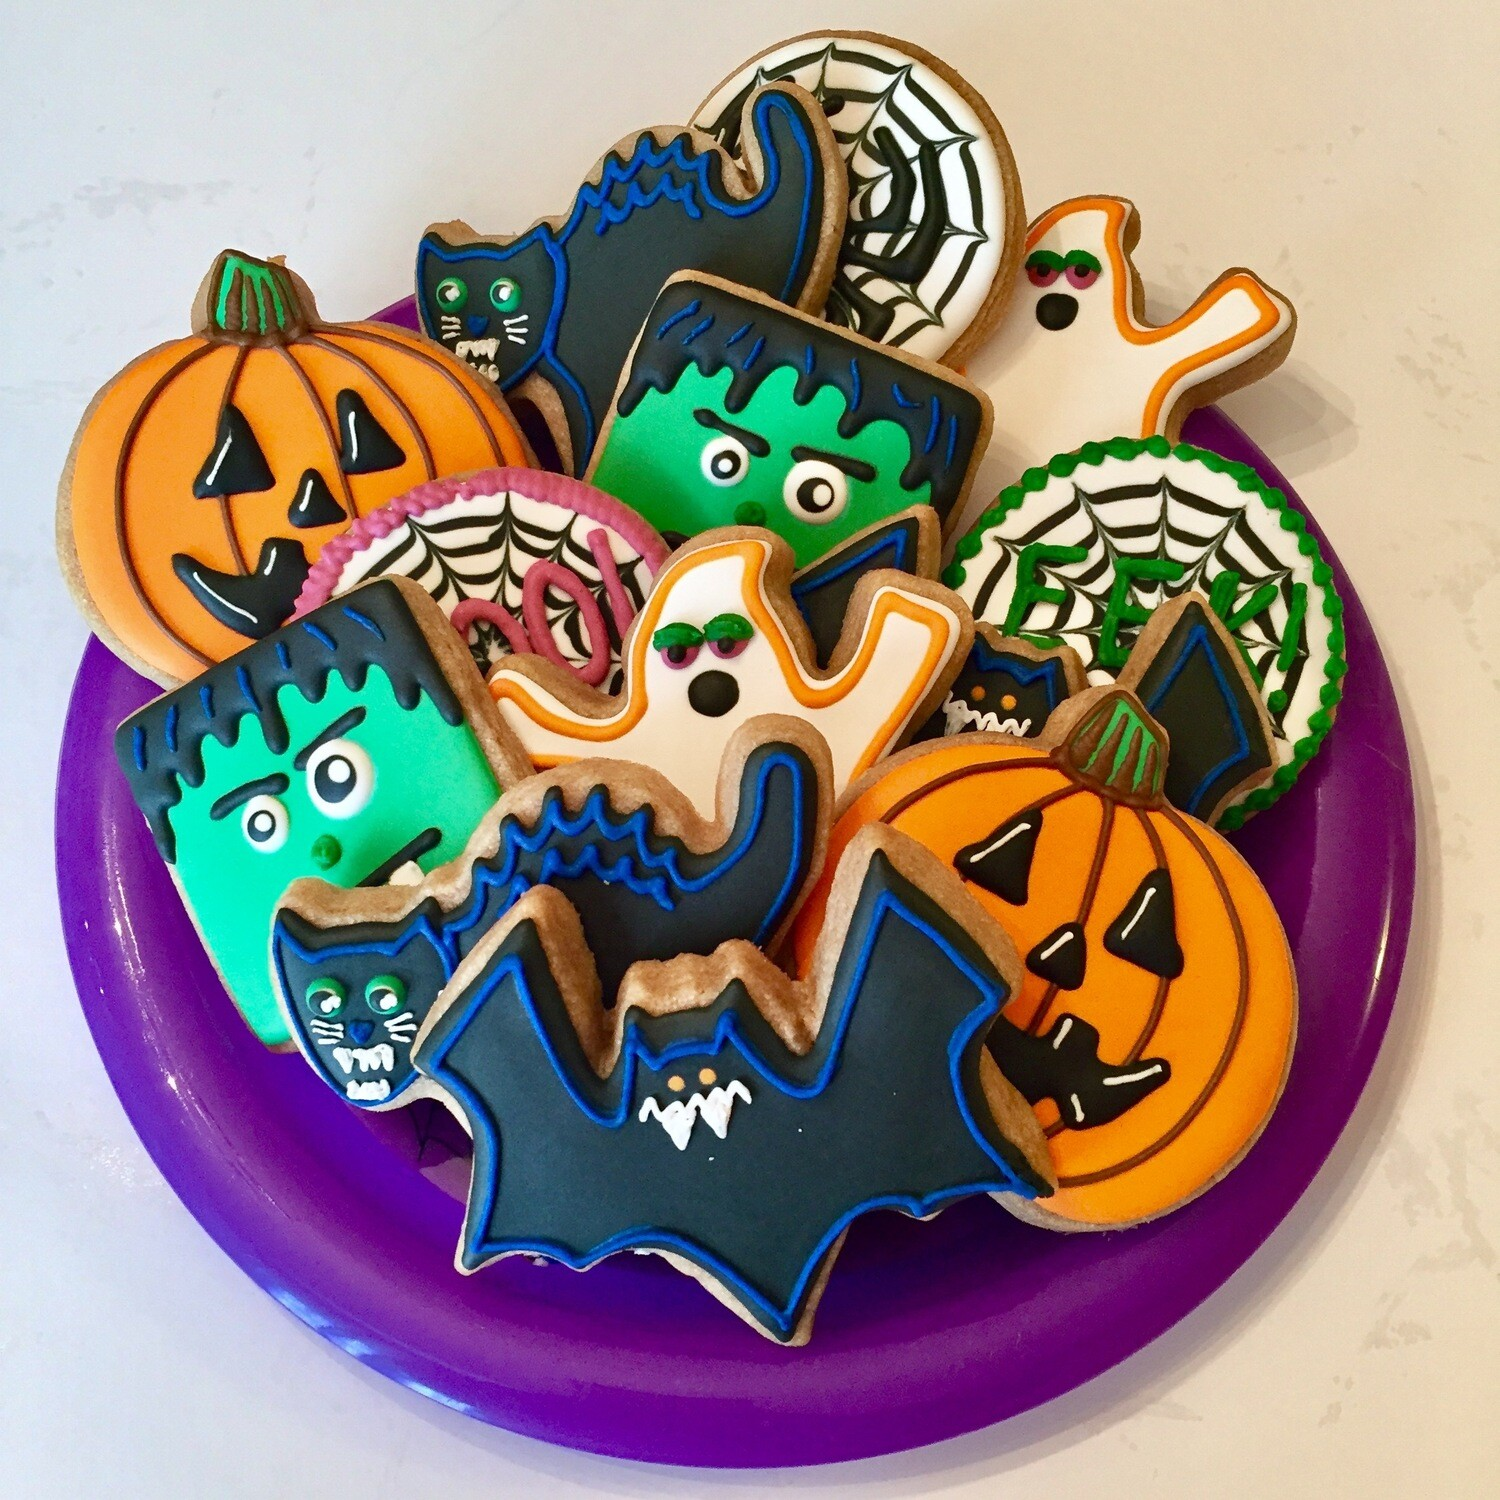 HALLOWEEN Decorating Workshop - SUNDAY, OCTOBER 27, 2019 at 3:00 p.m. (THE POTPOURRI HOUSE)